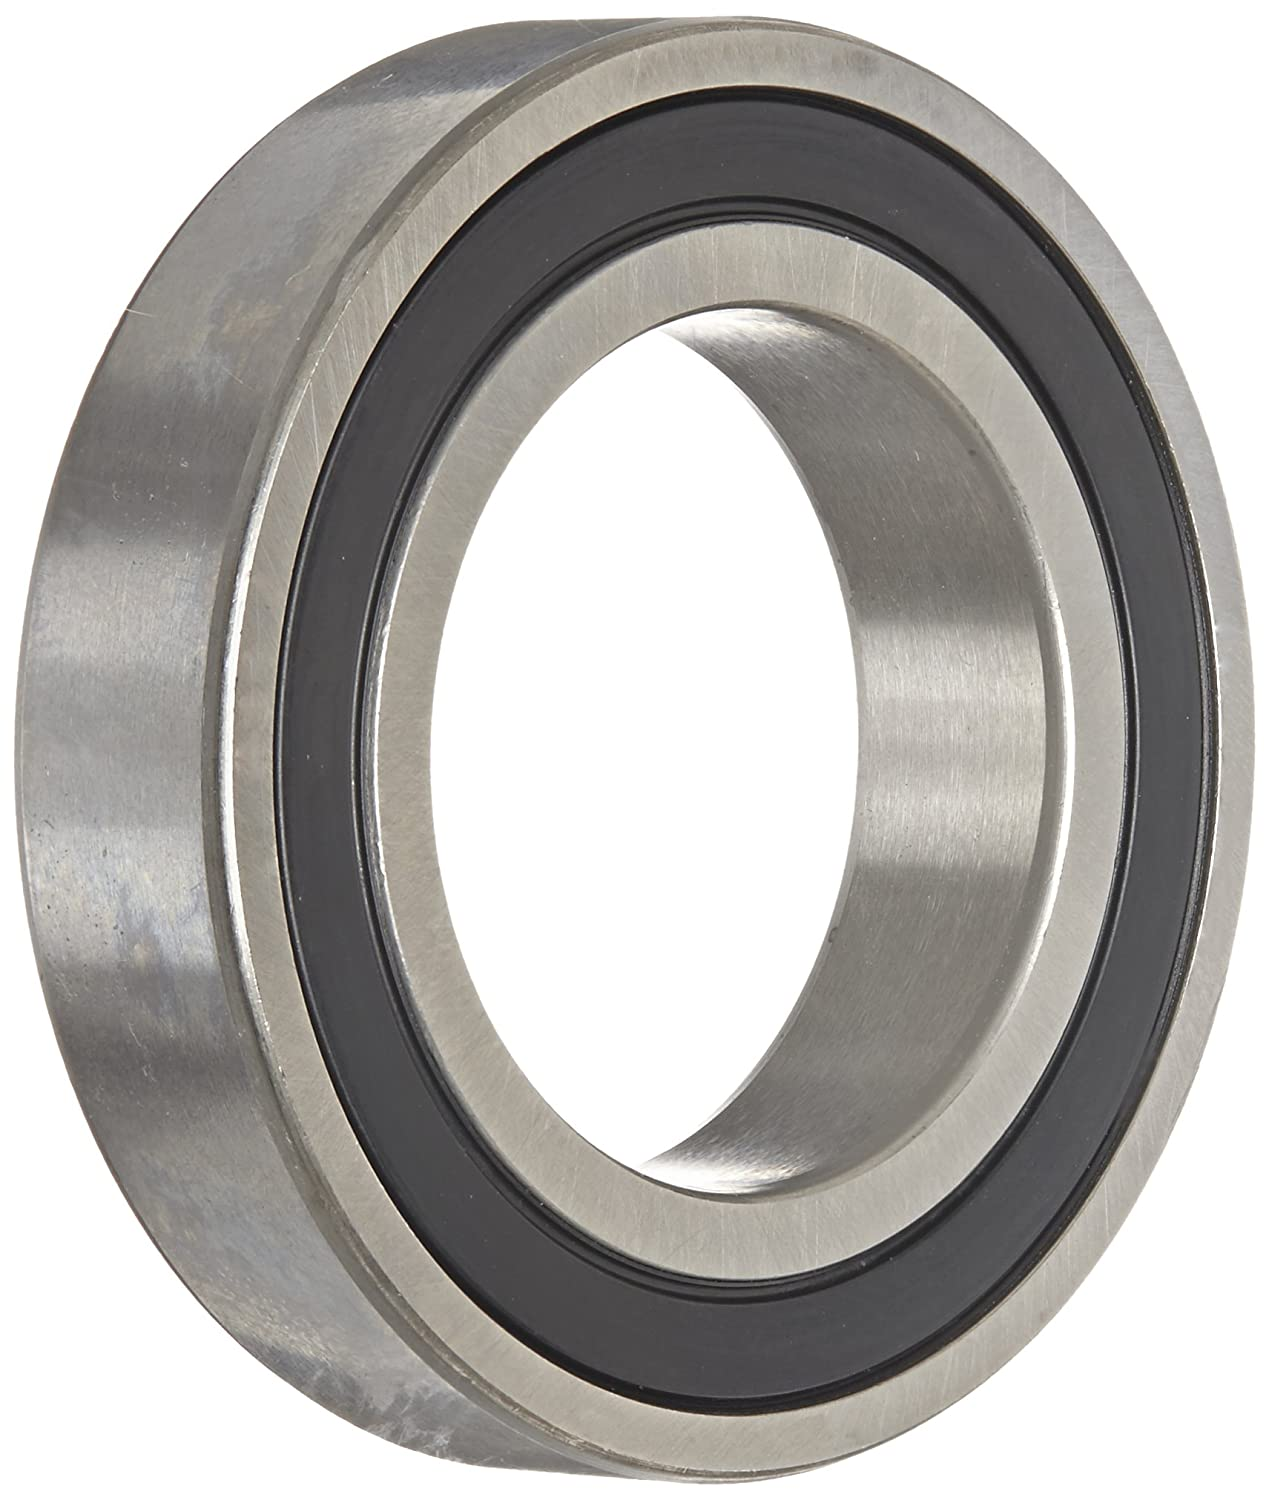 SKF 61805-2RS1 Deep Groove Ball Bearing, ABEC 1 Precision, Double Sealed, Standard Cage, Normal Clearance, 25mm Bore, 37mm OD, 7mm Width, 6540lbf Dynamic Load Capacity